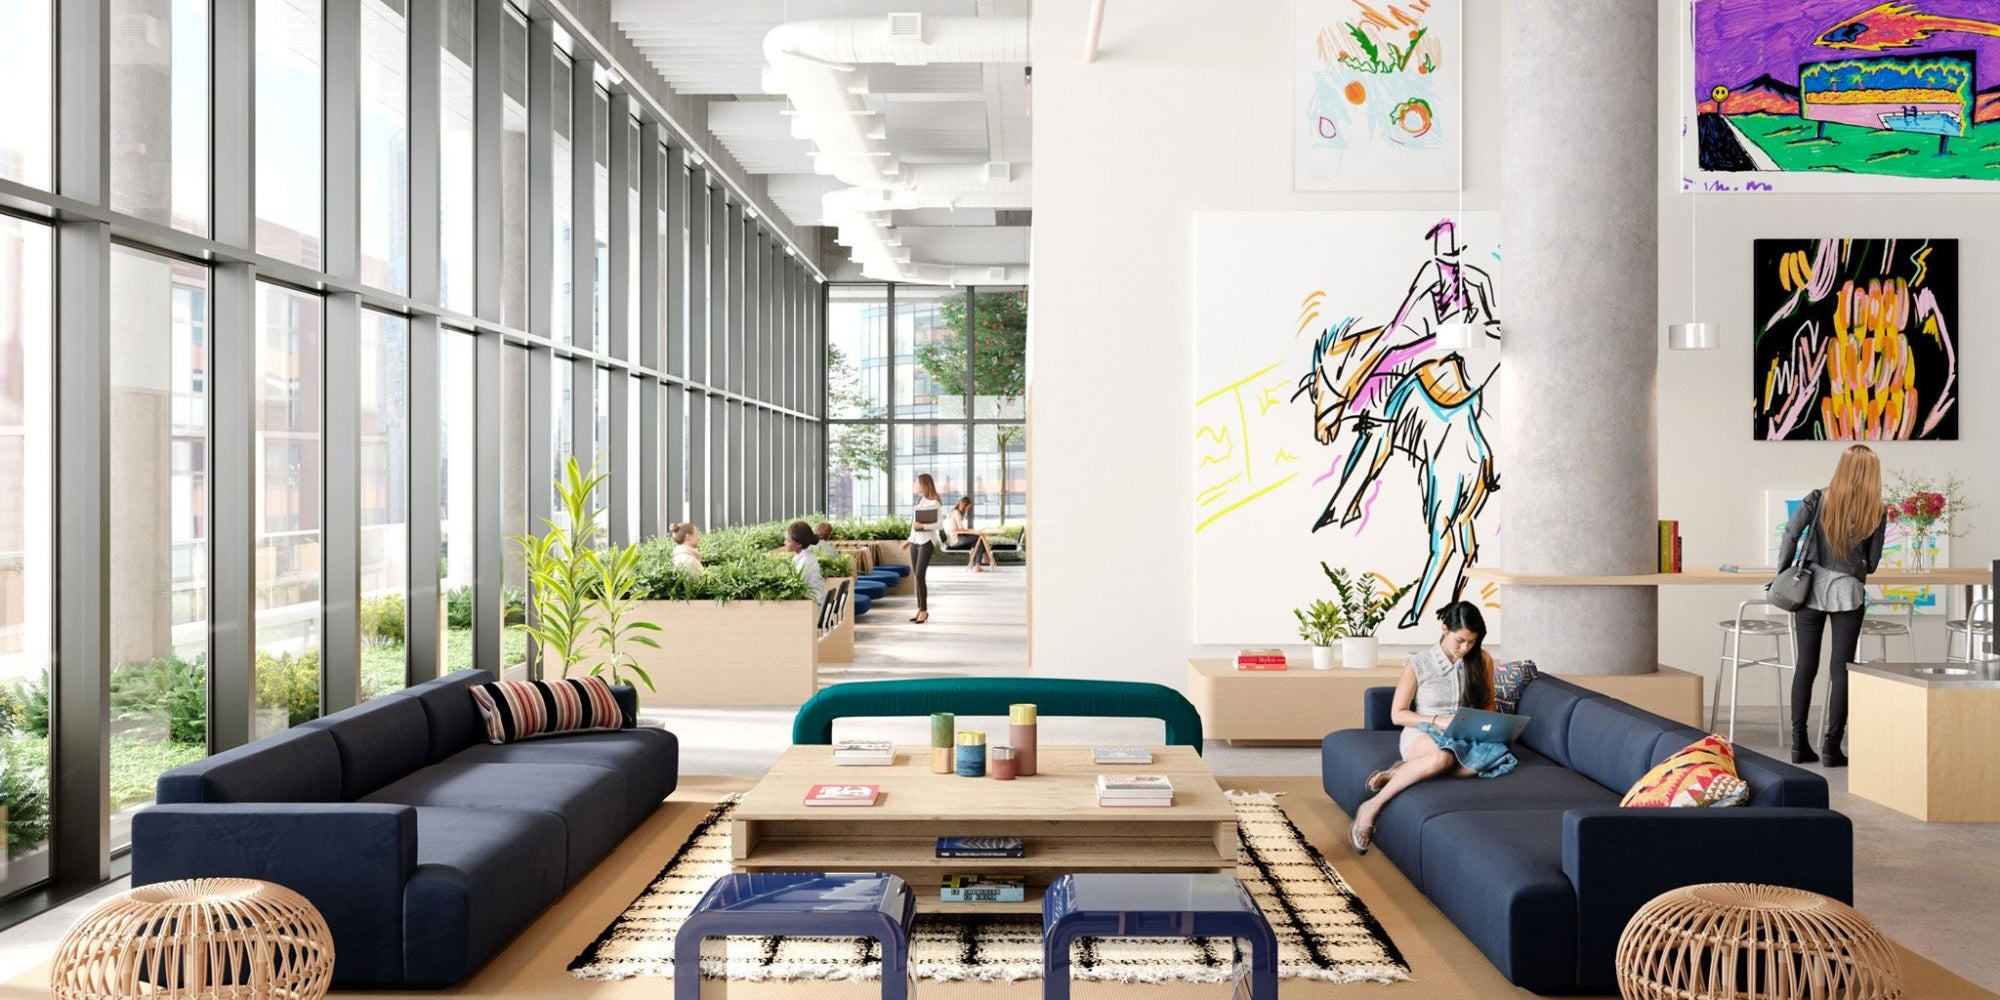 WeWork, Industrious, The Yard: Here's How Much Membership Will Cost You at 12 Coworking Spaces